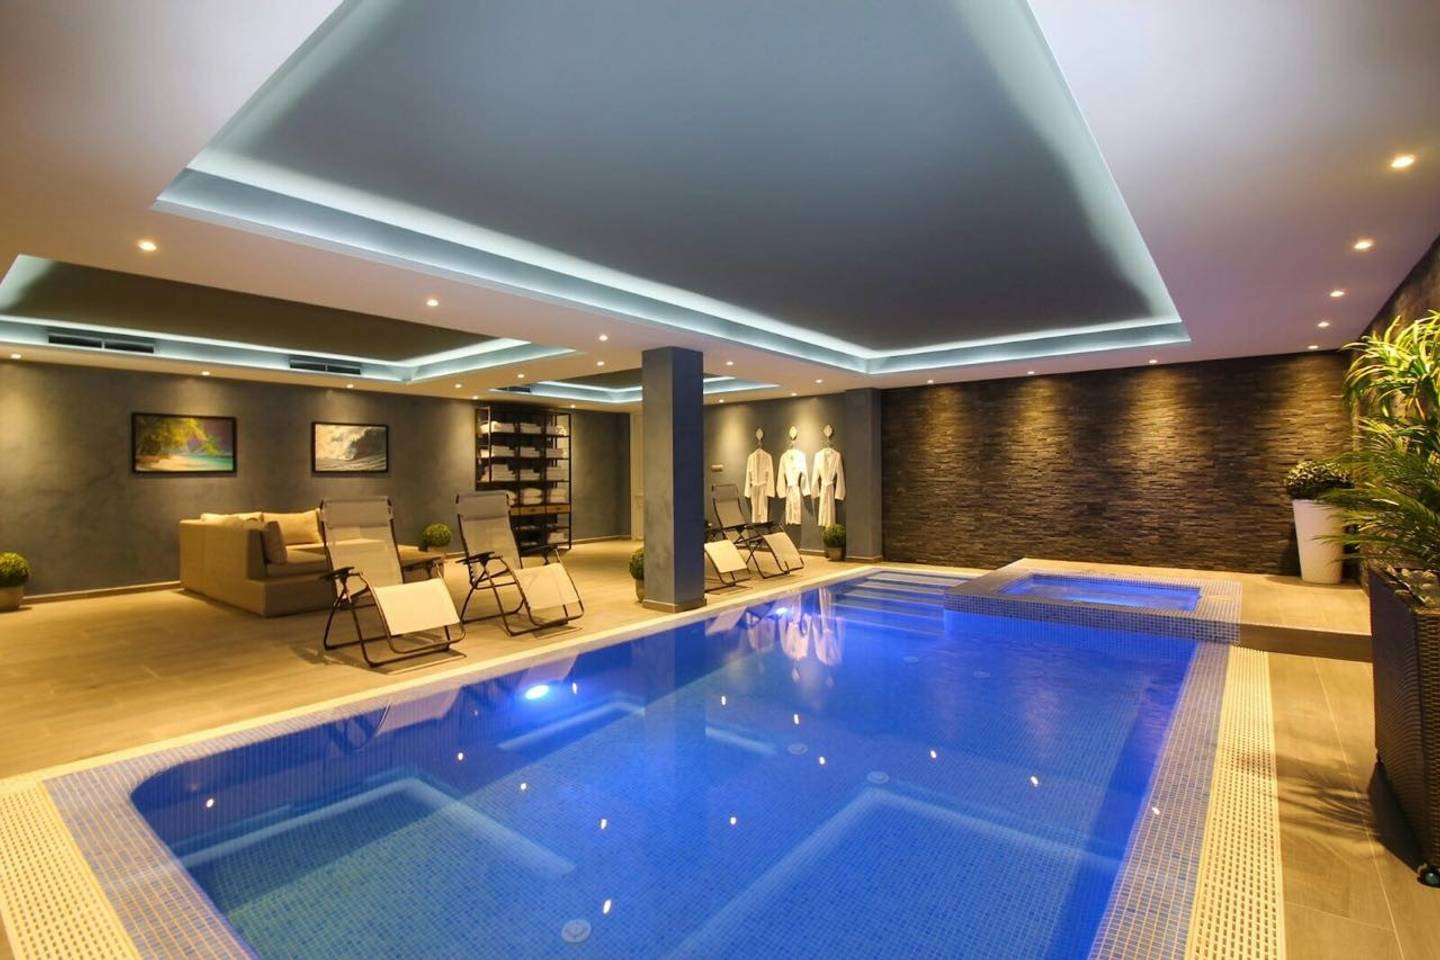 Soo LUXURIOUS catered Spoiling Estate Pools & Spa photo 16523078